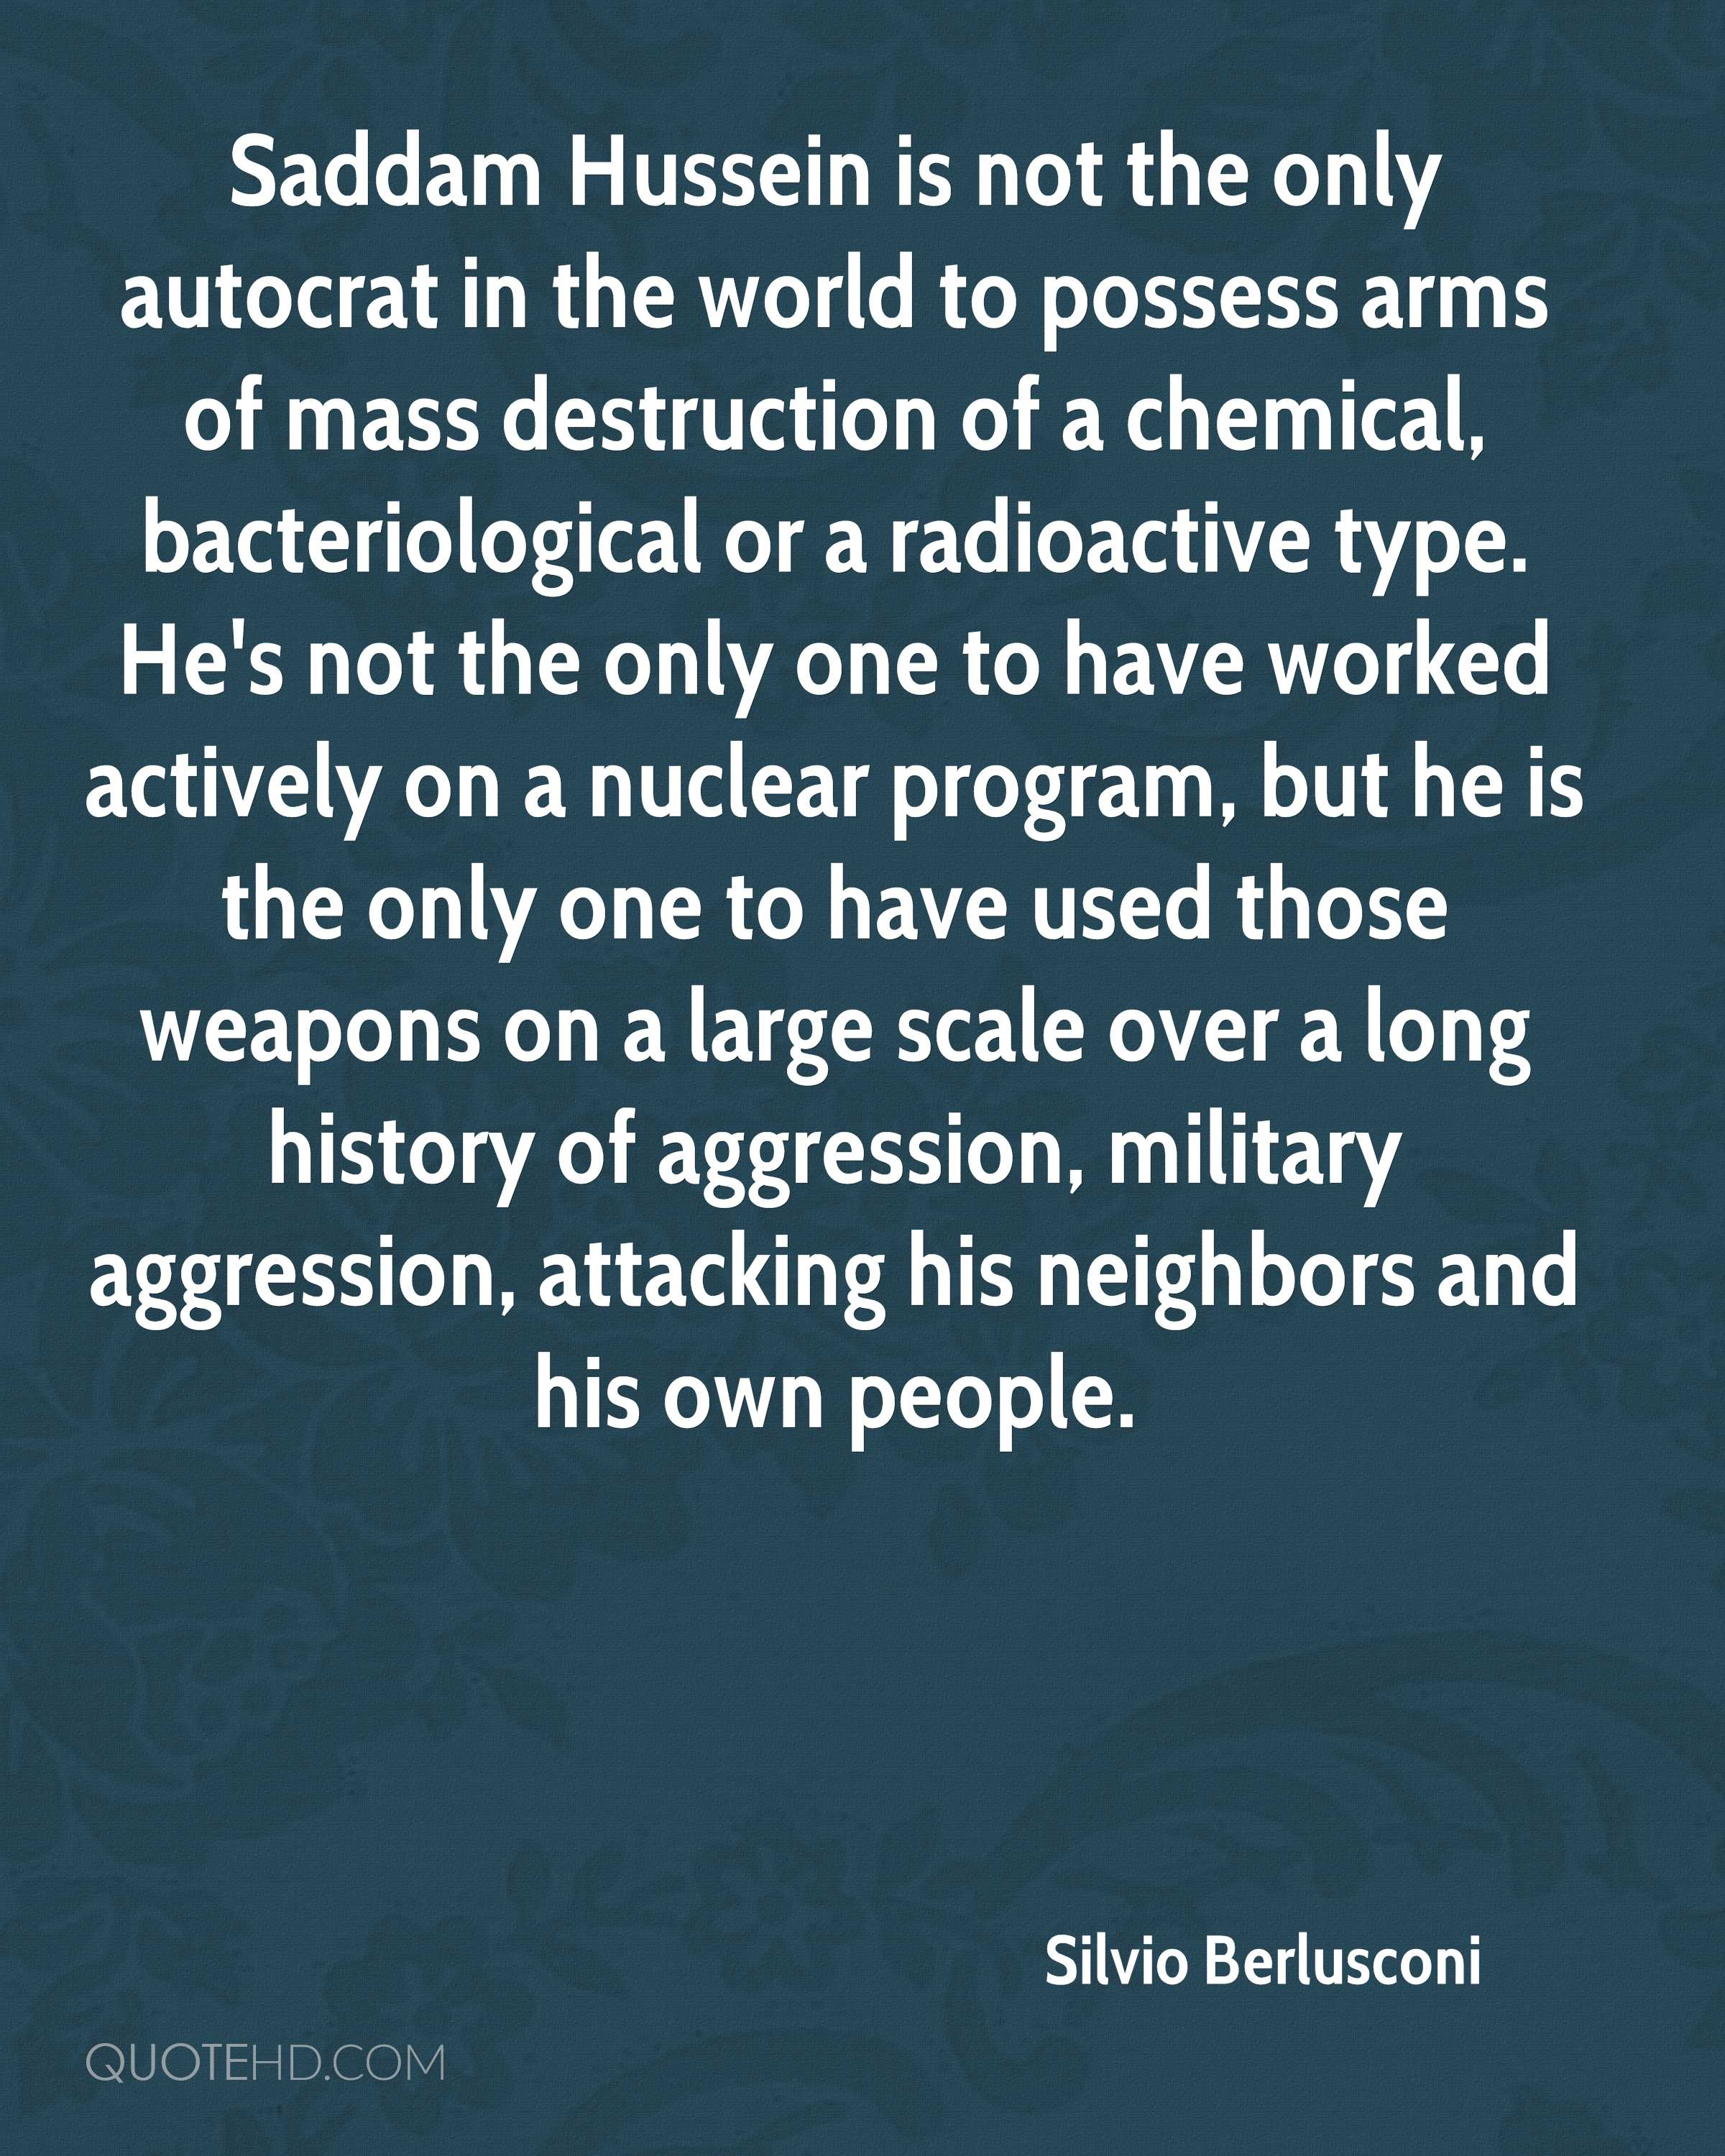 Saddam Hussein is not the only autocrat in the world to possess arms of mass destruction of a chemical, bacteriological or a radioactive type. He's not the only one to have worked actively on a nuclear program, but he is the only one to have used those weapons on a large scale over a long history of aggression, military aggression, attacking his neighbors and his own people.